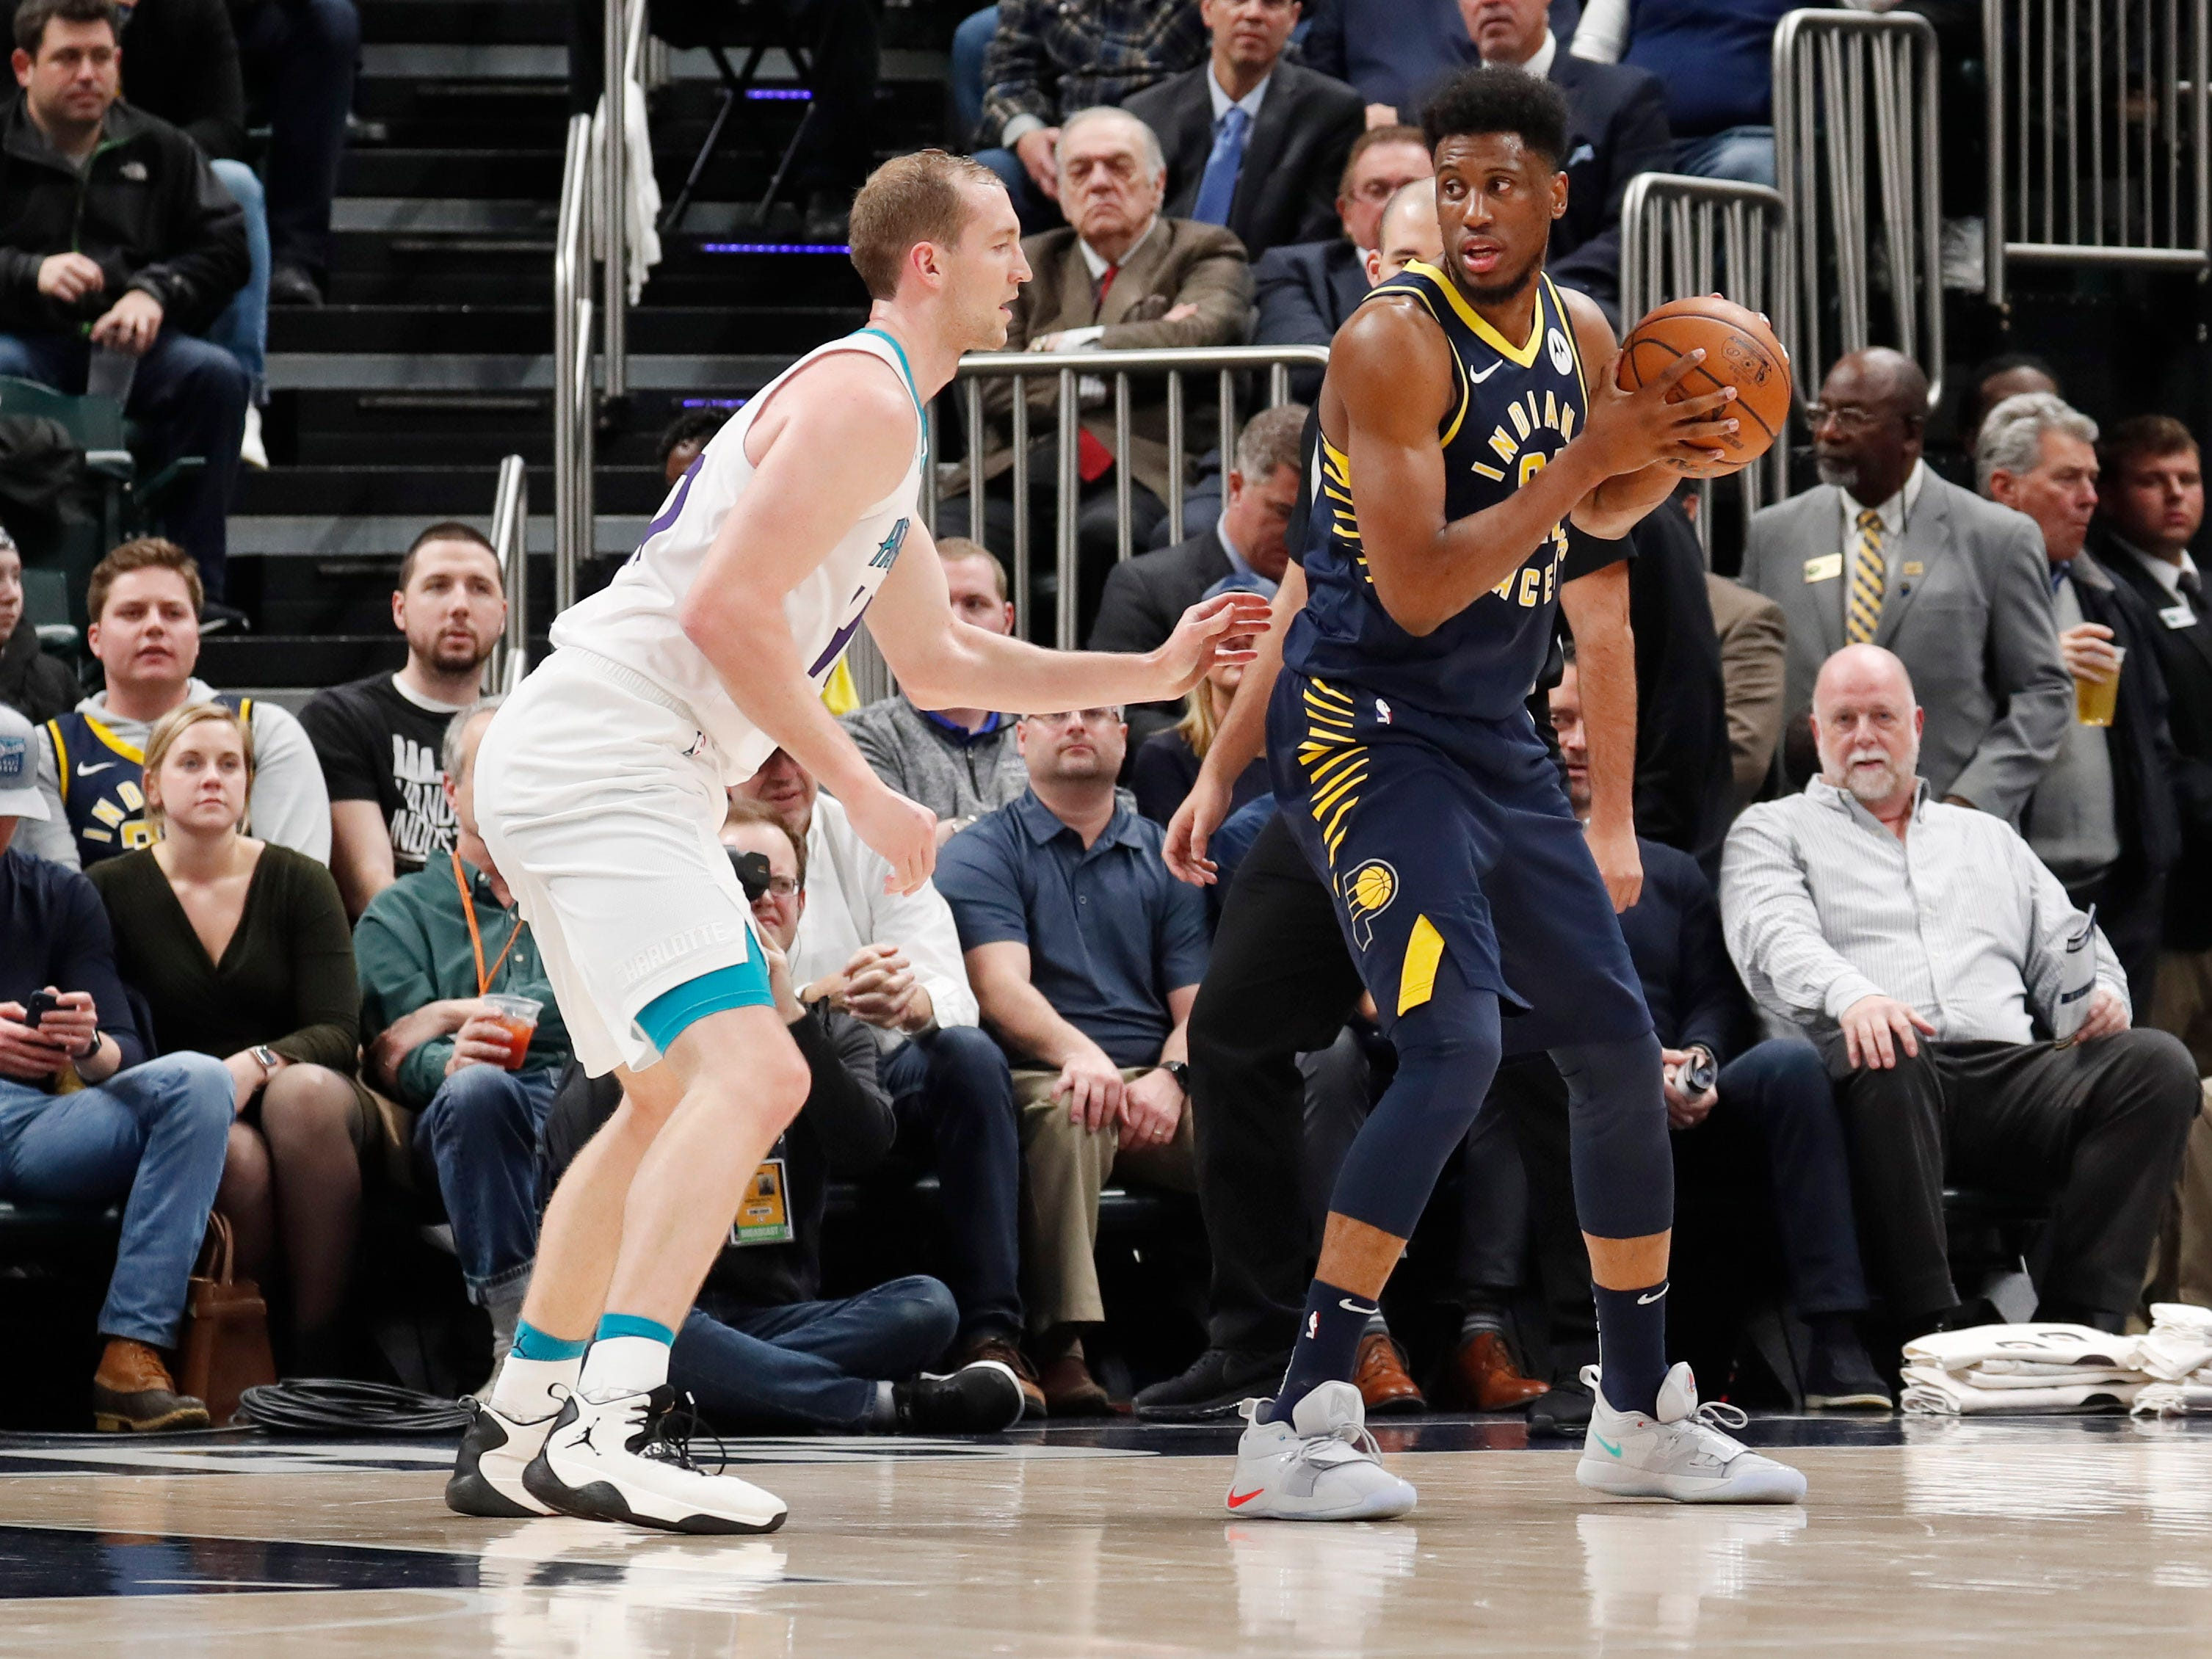 Feb 11, 2019; Indianapolis, IN, USA; Indiana Pacers forward Thaddeus Young (21) is guarded by Charlotte Hornets center Cody Zeller (40) during the first quarter at Bankers Life Fieldhouse.